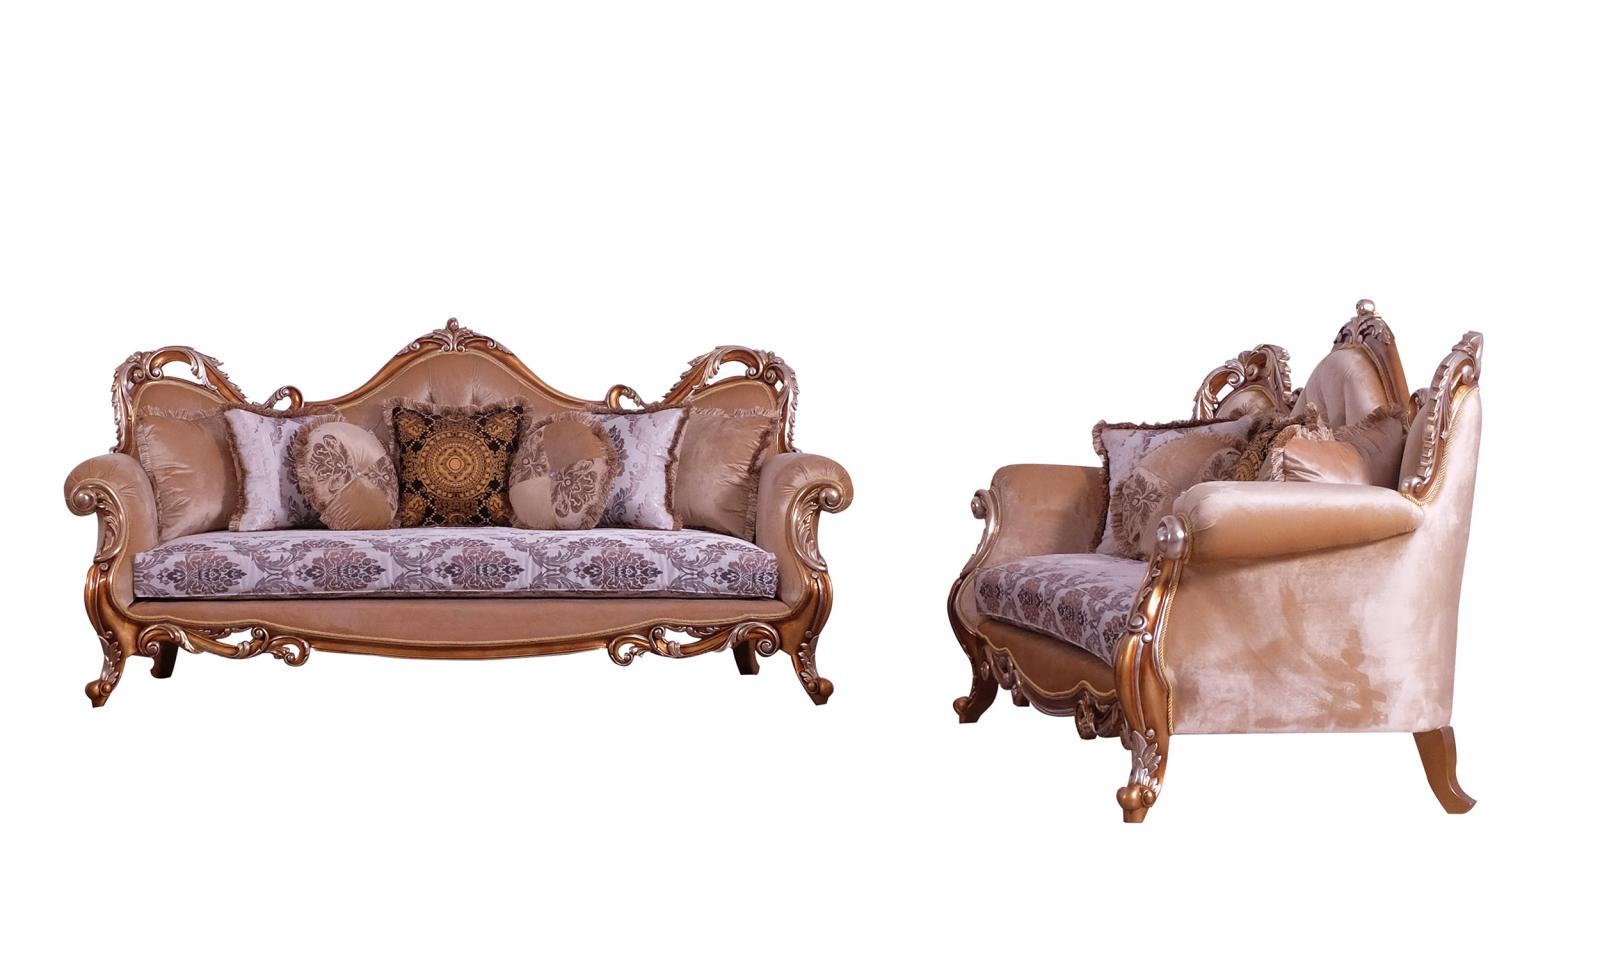 Classic  Traditional Gold  Silver  Antique   Black Wood  Solid Hardwood and Fabric Sofa Set EUROPEAN FURNITURE 38996-S-Set-2